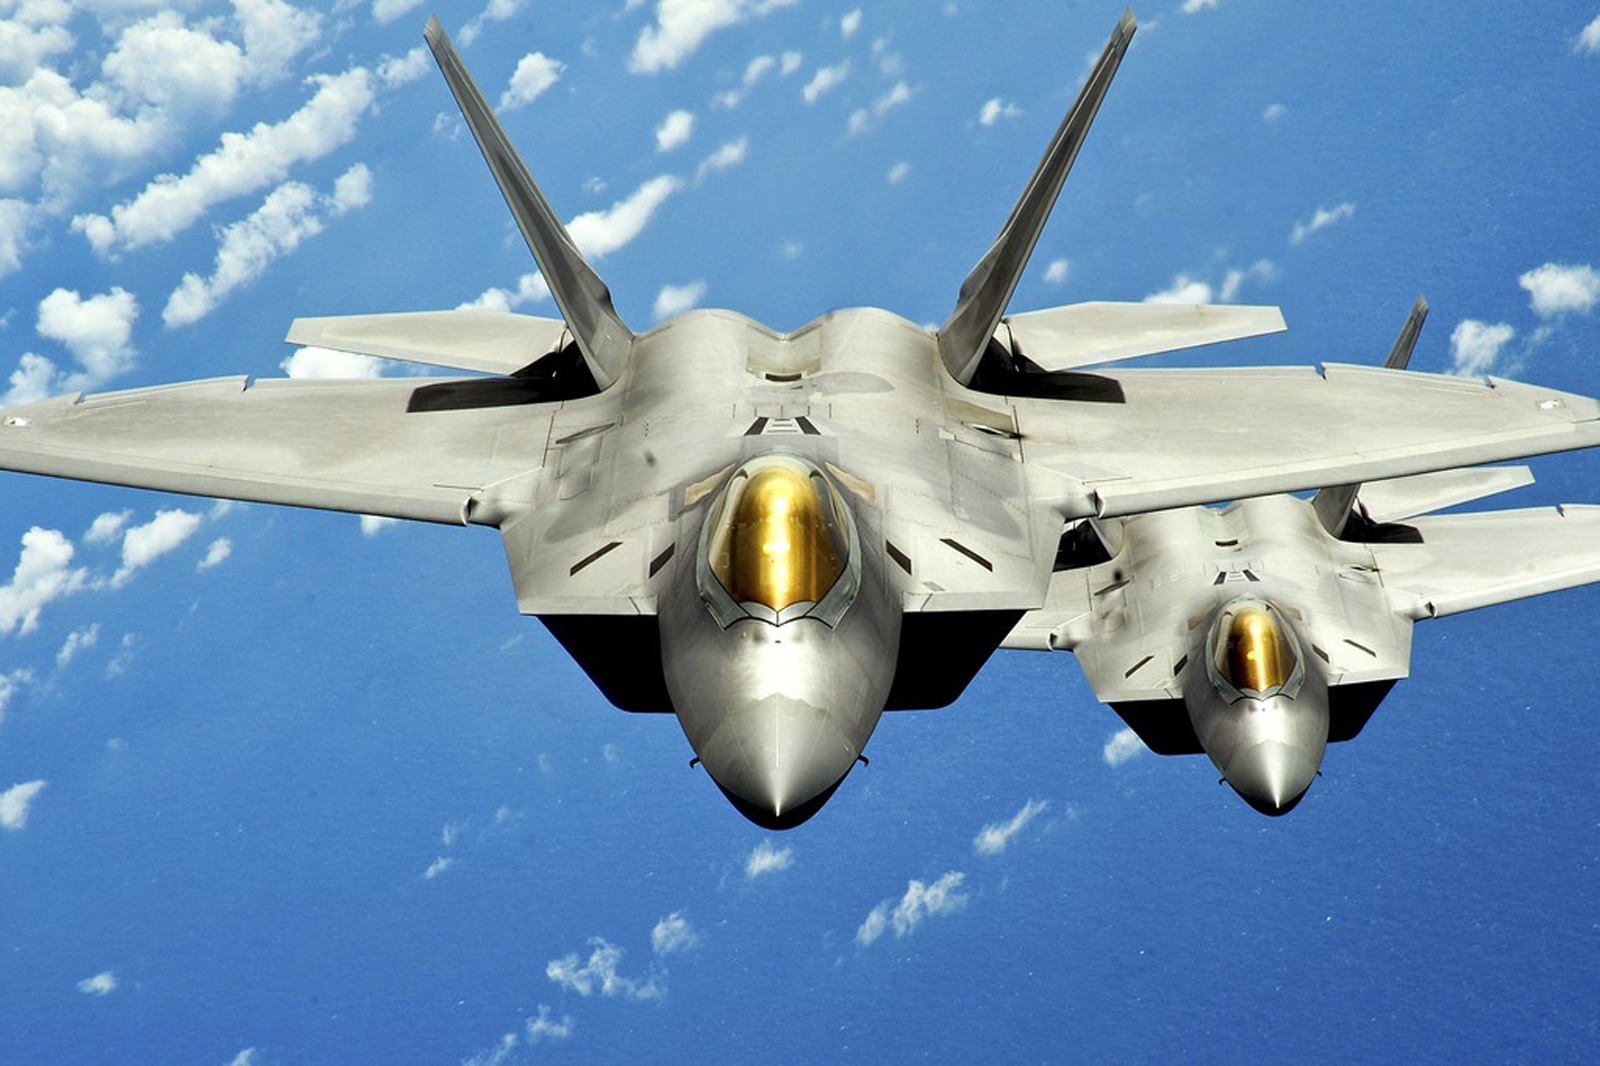 Sig Sauer Iphone Wallpaper F 22 Raptor Jet Fighter Hd Wallpapers Military Wallbase